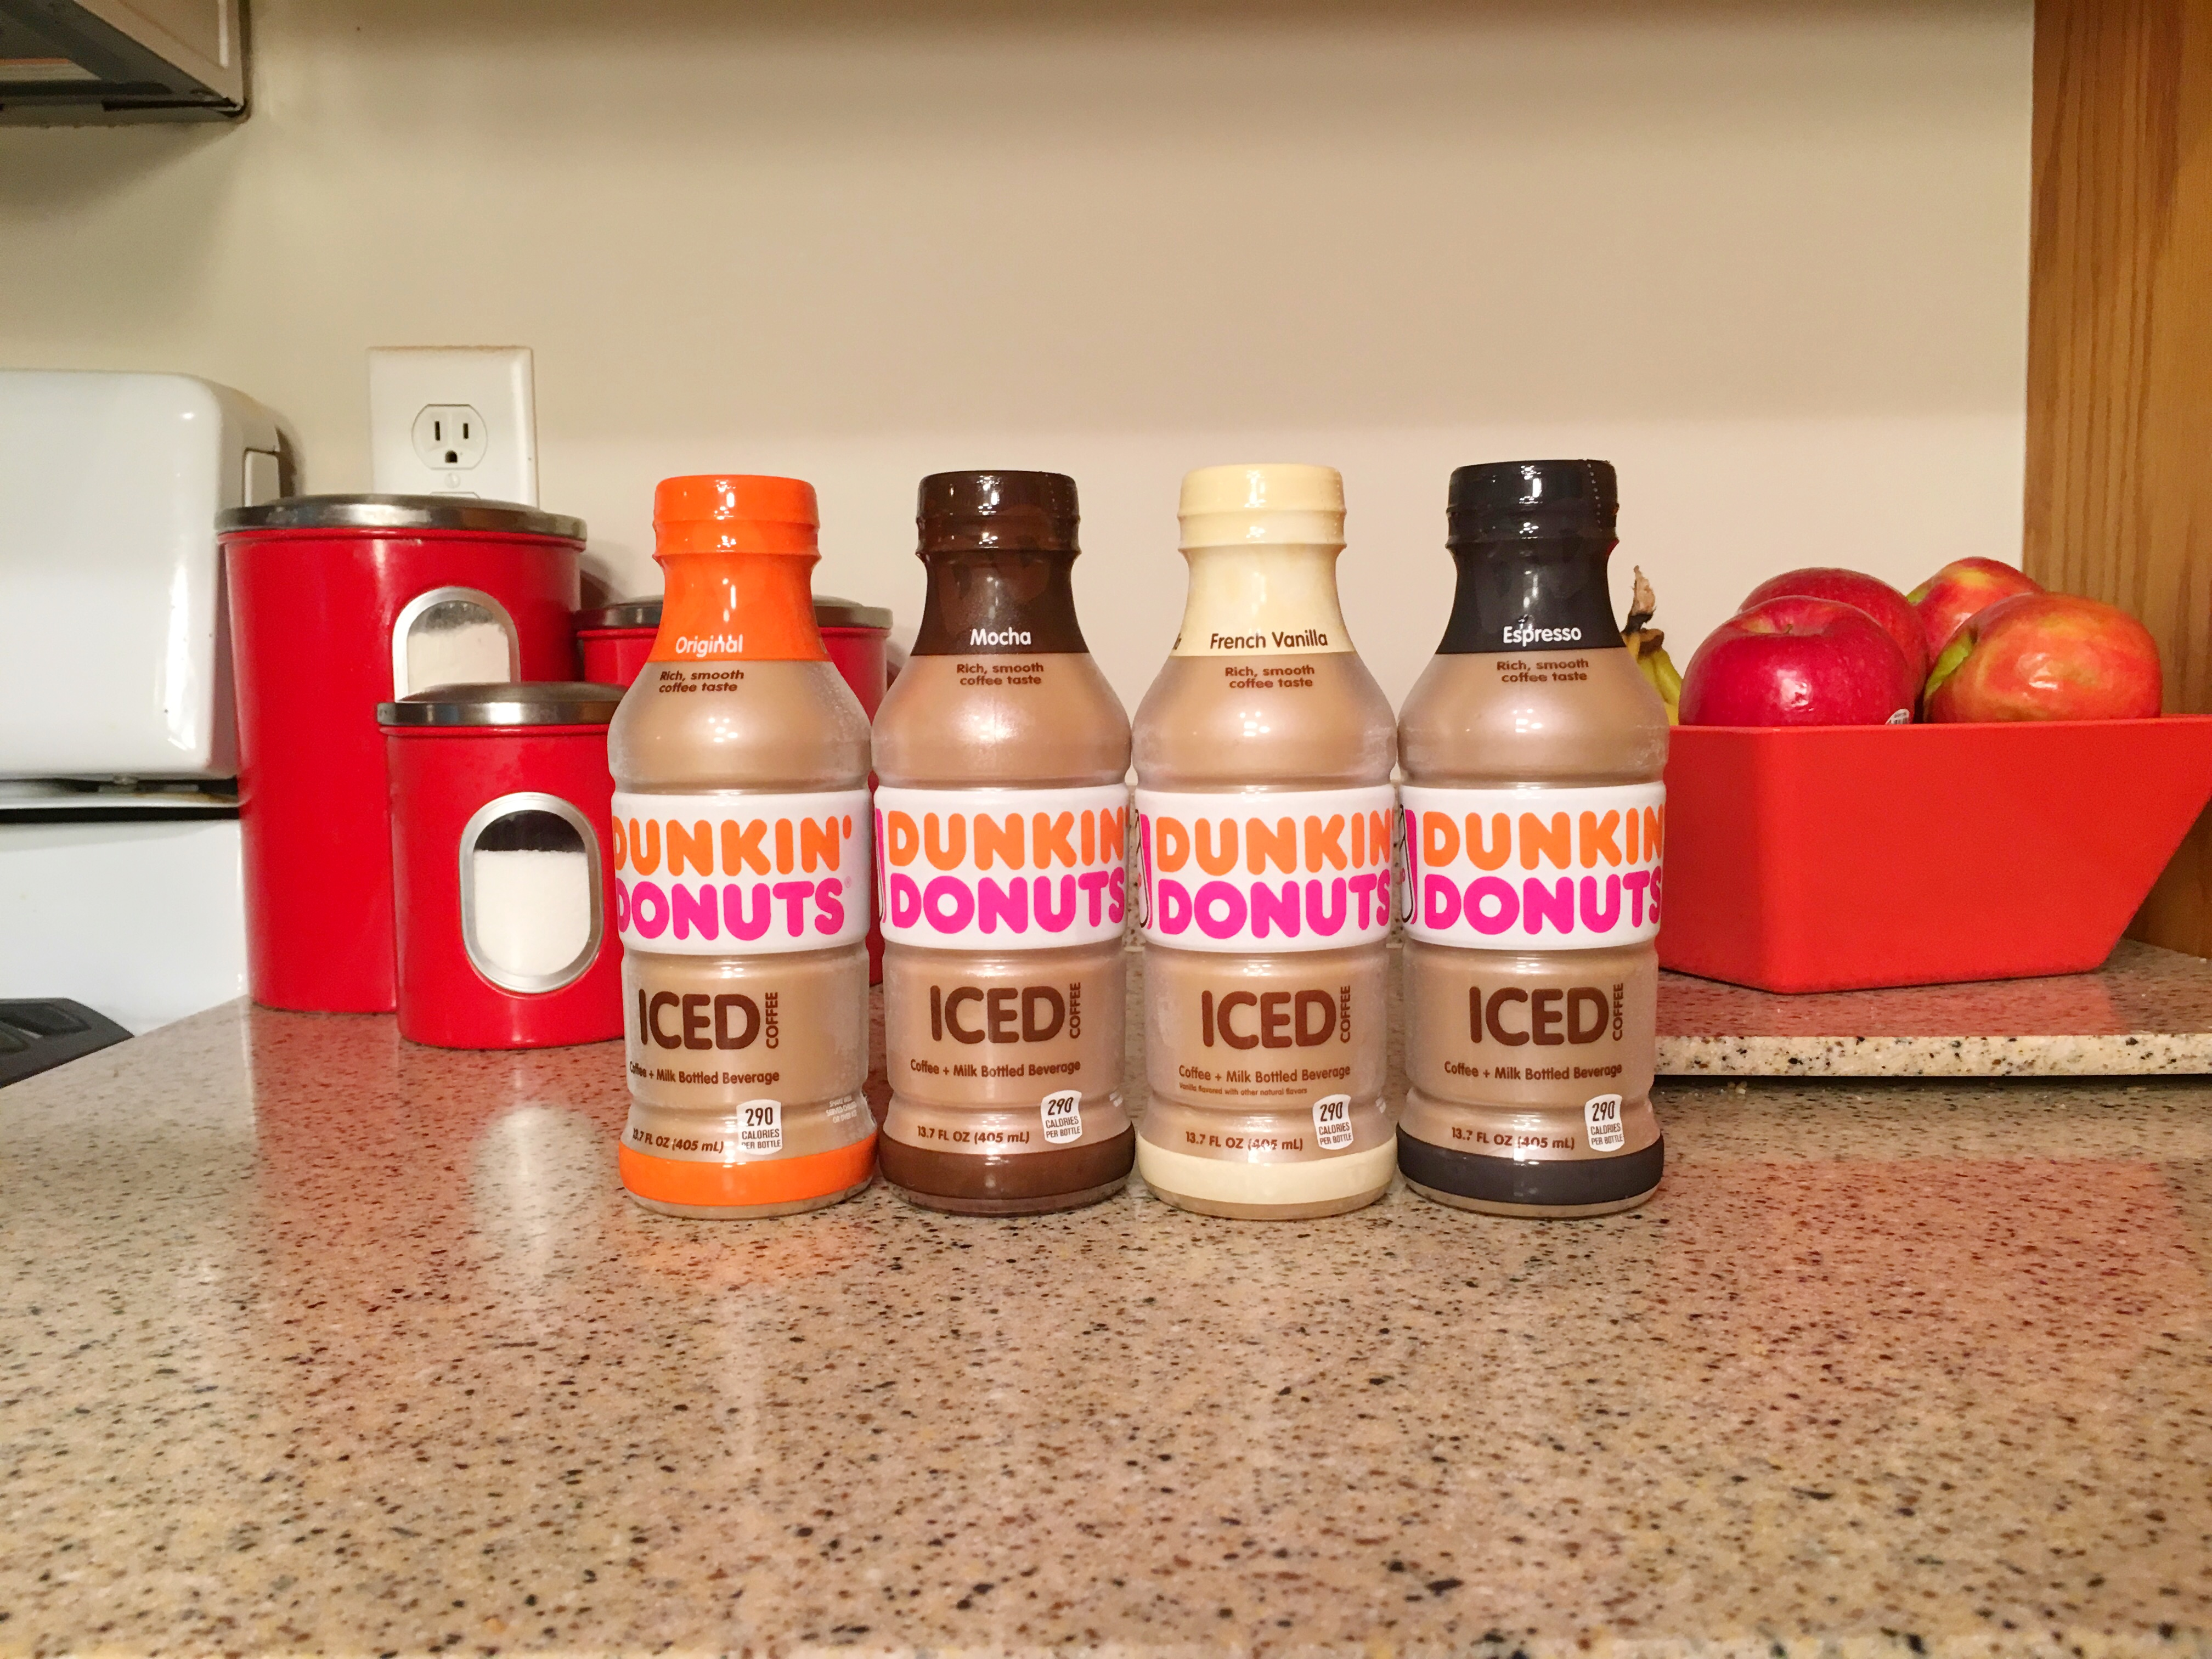 #ad On a hectic morning, I've started drinking iced coffee instead. Read about how it makes my mornings so much better! #IcedDunkinOnTheGo quirkyandthenerd.com